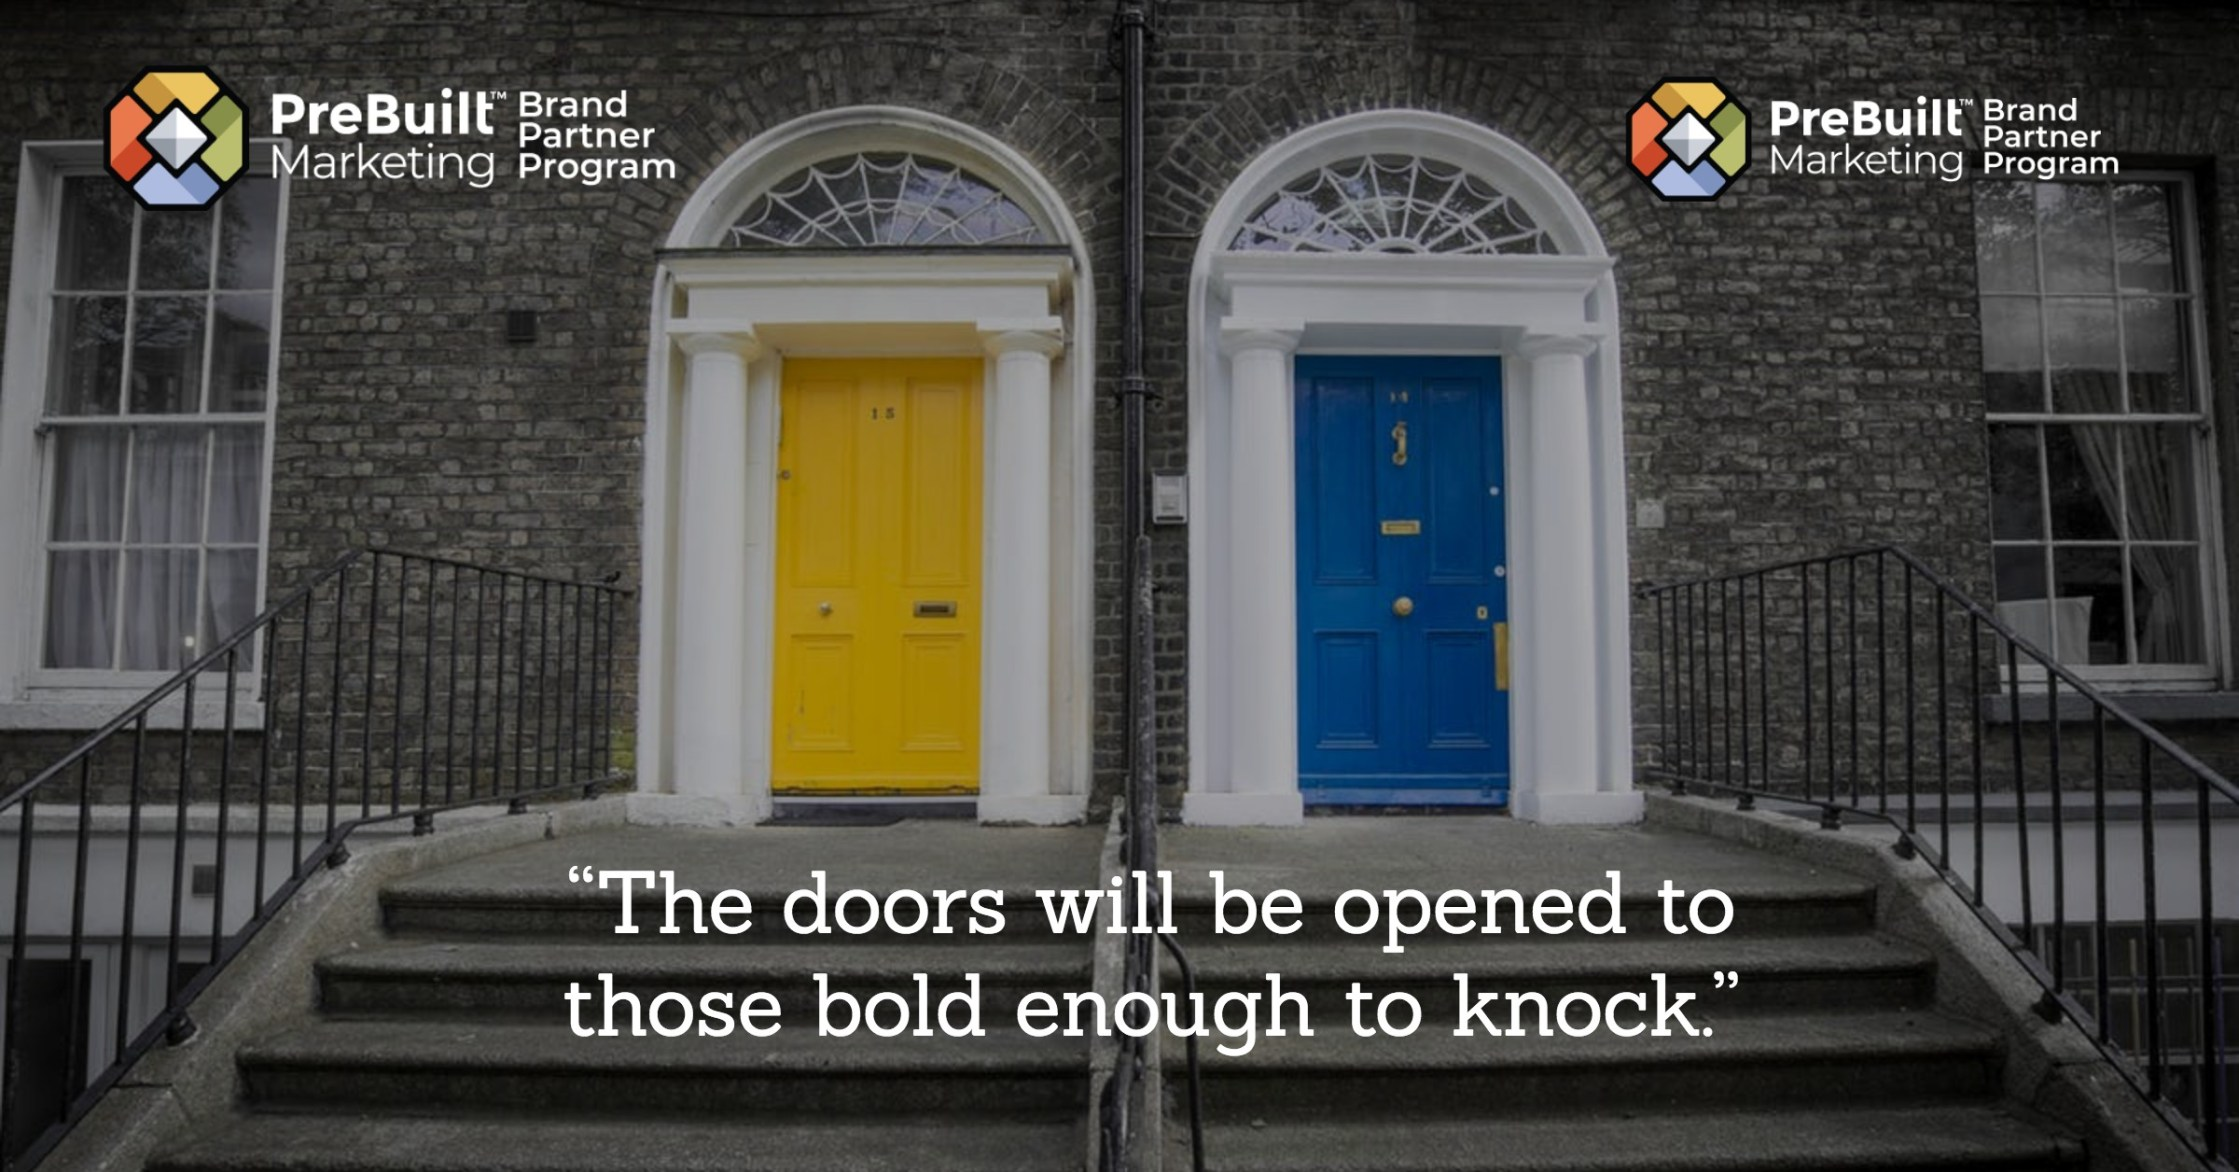 Prebuilt Marketing Brand Partner Program - The doors will be opened to those bold enough to knock.